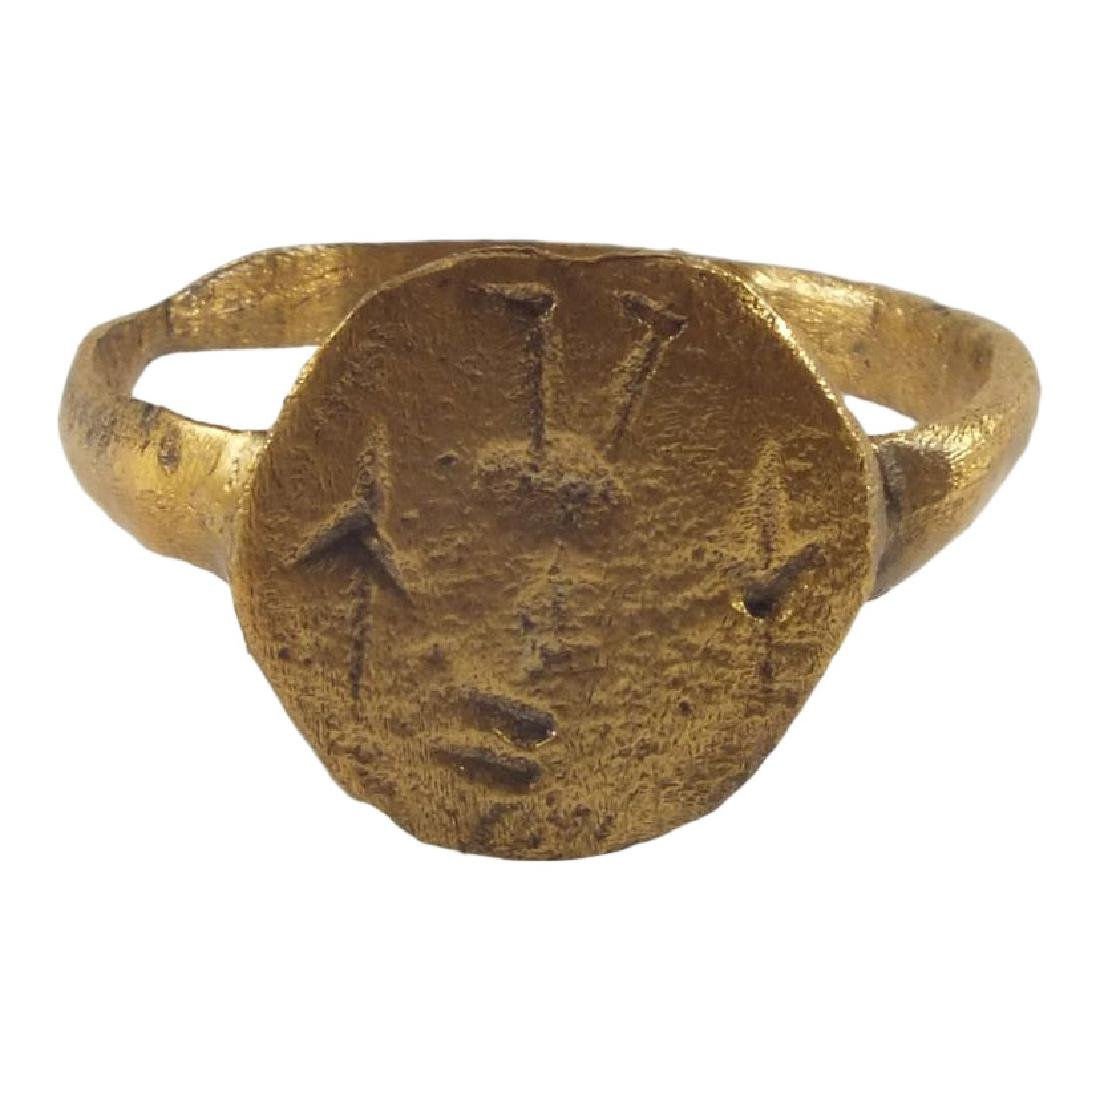 Rare Viking Signet Ring 900 AD